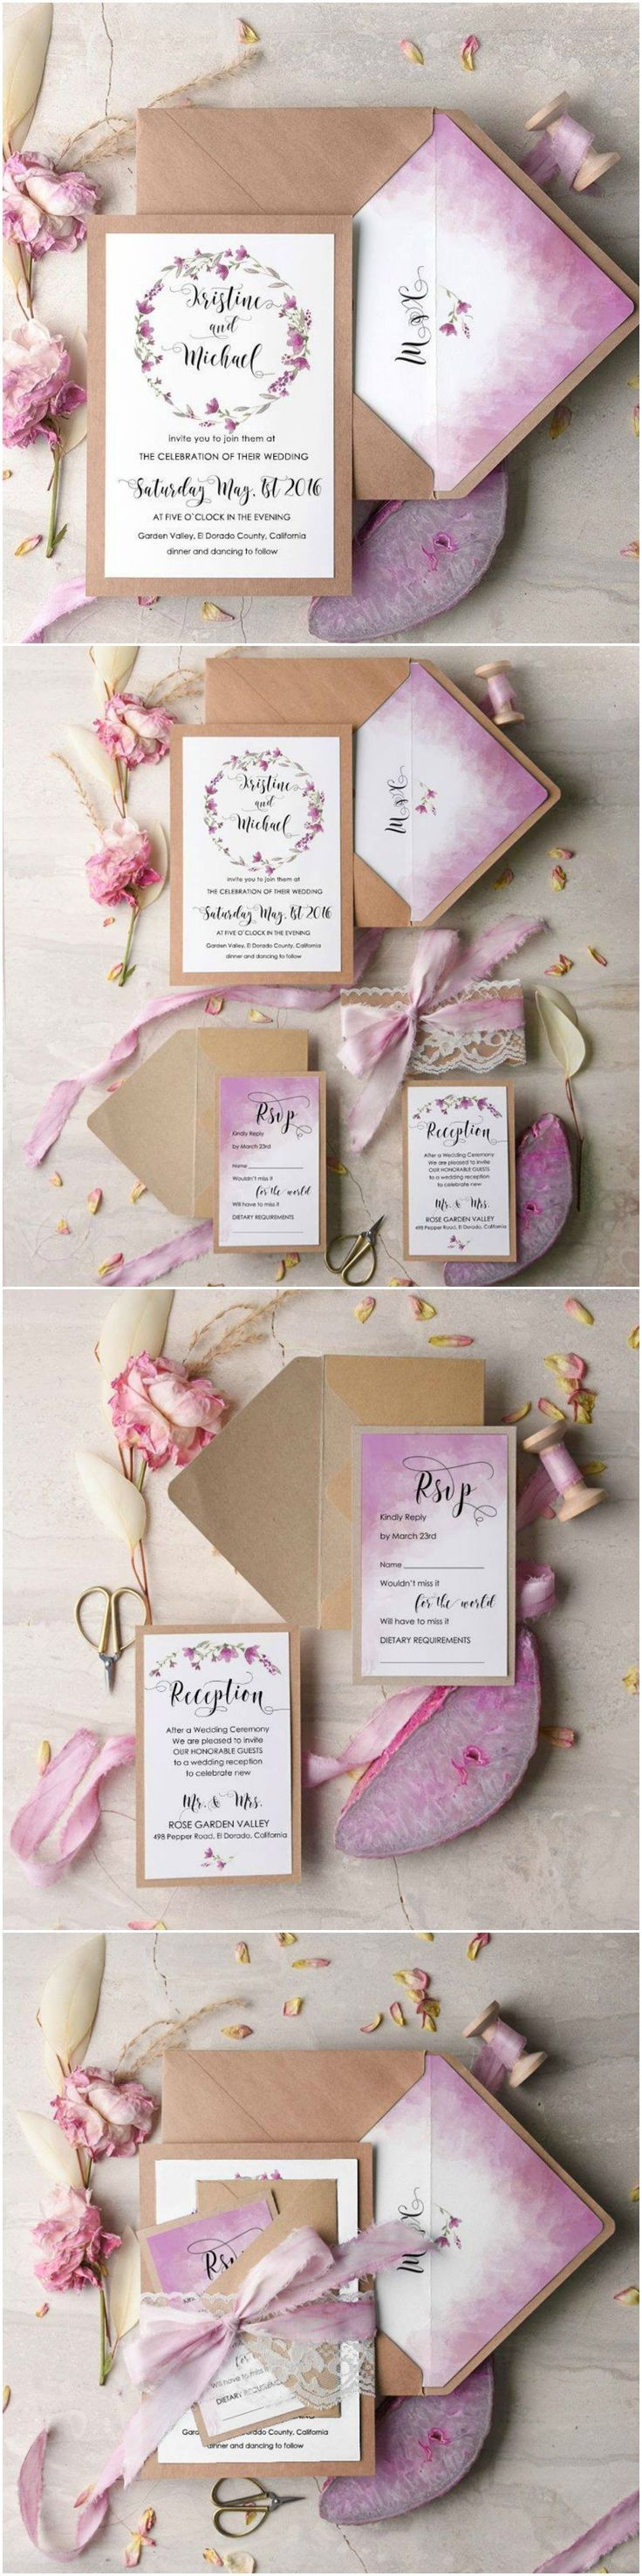 lotus flower wedding invitations%0A Ombre Watercolor Wedding Invitation with real lace